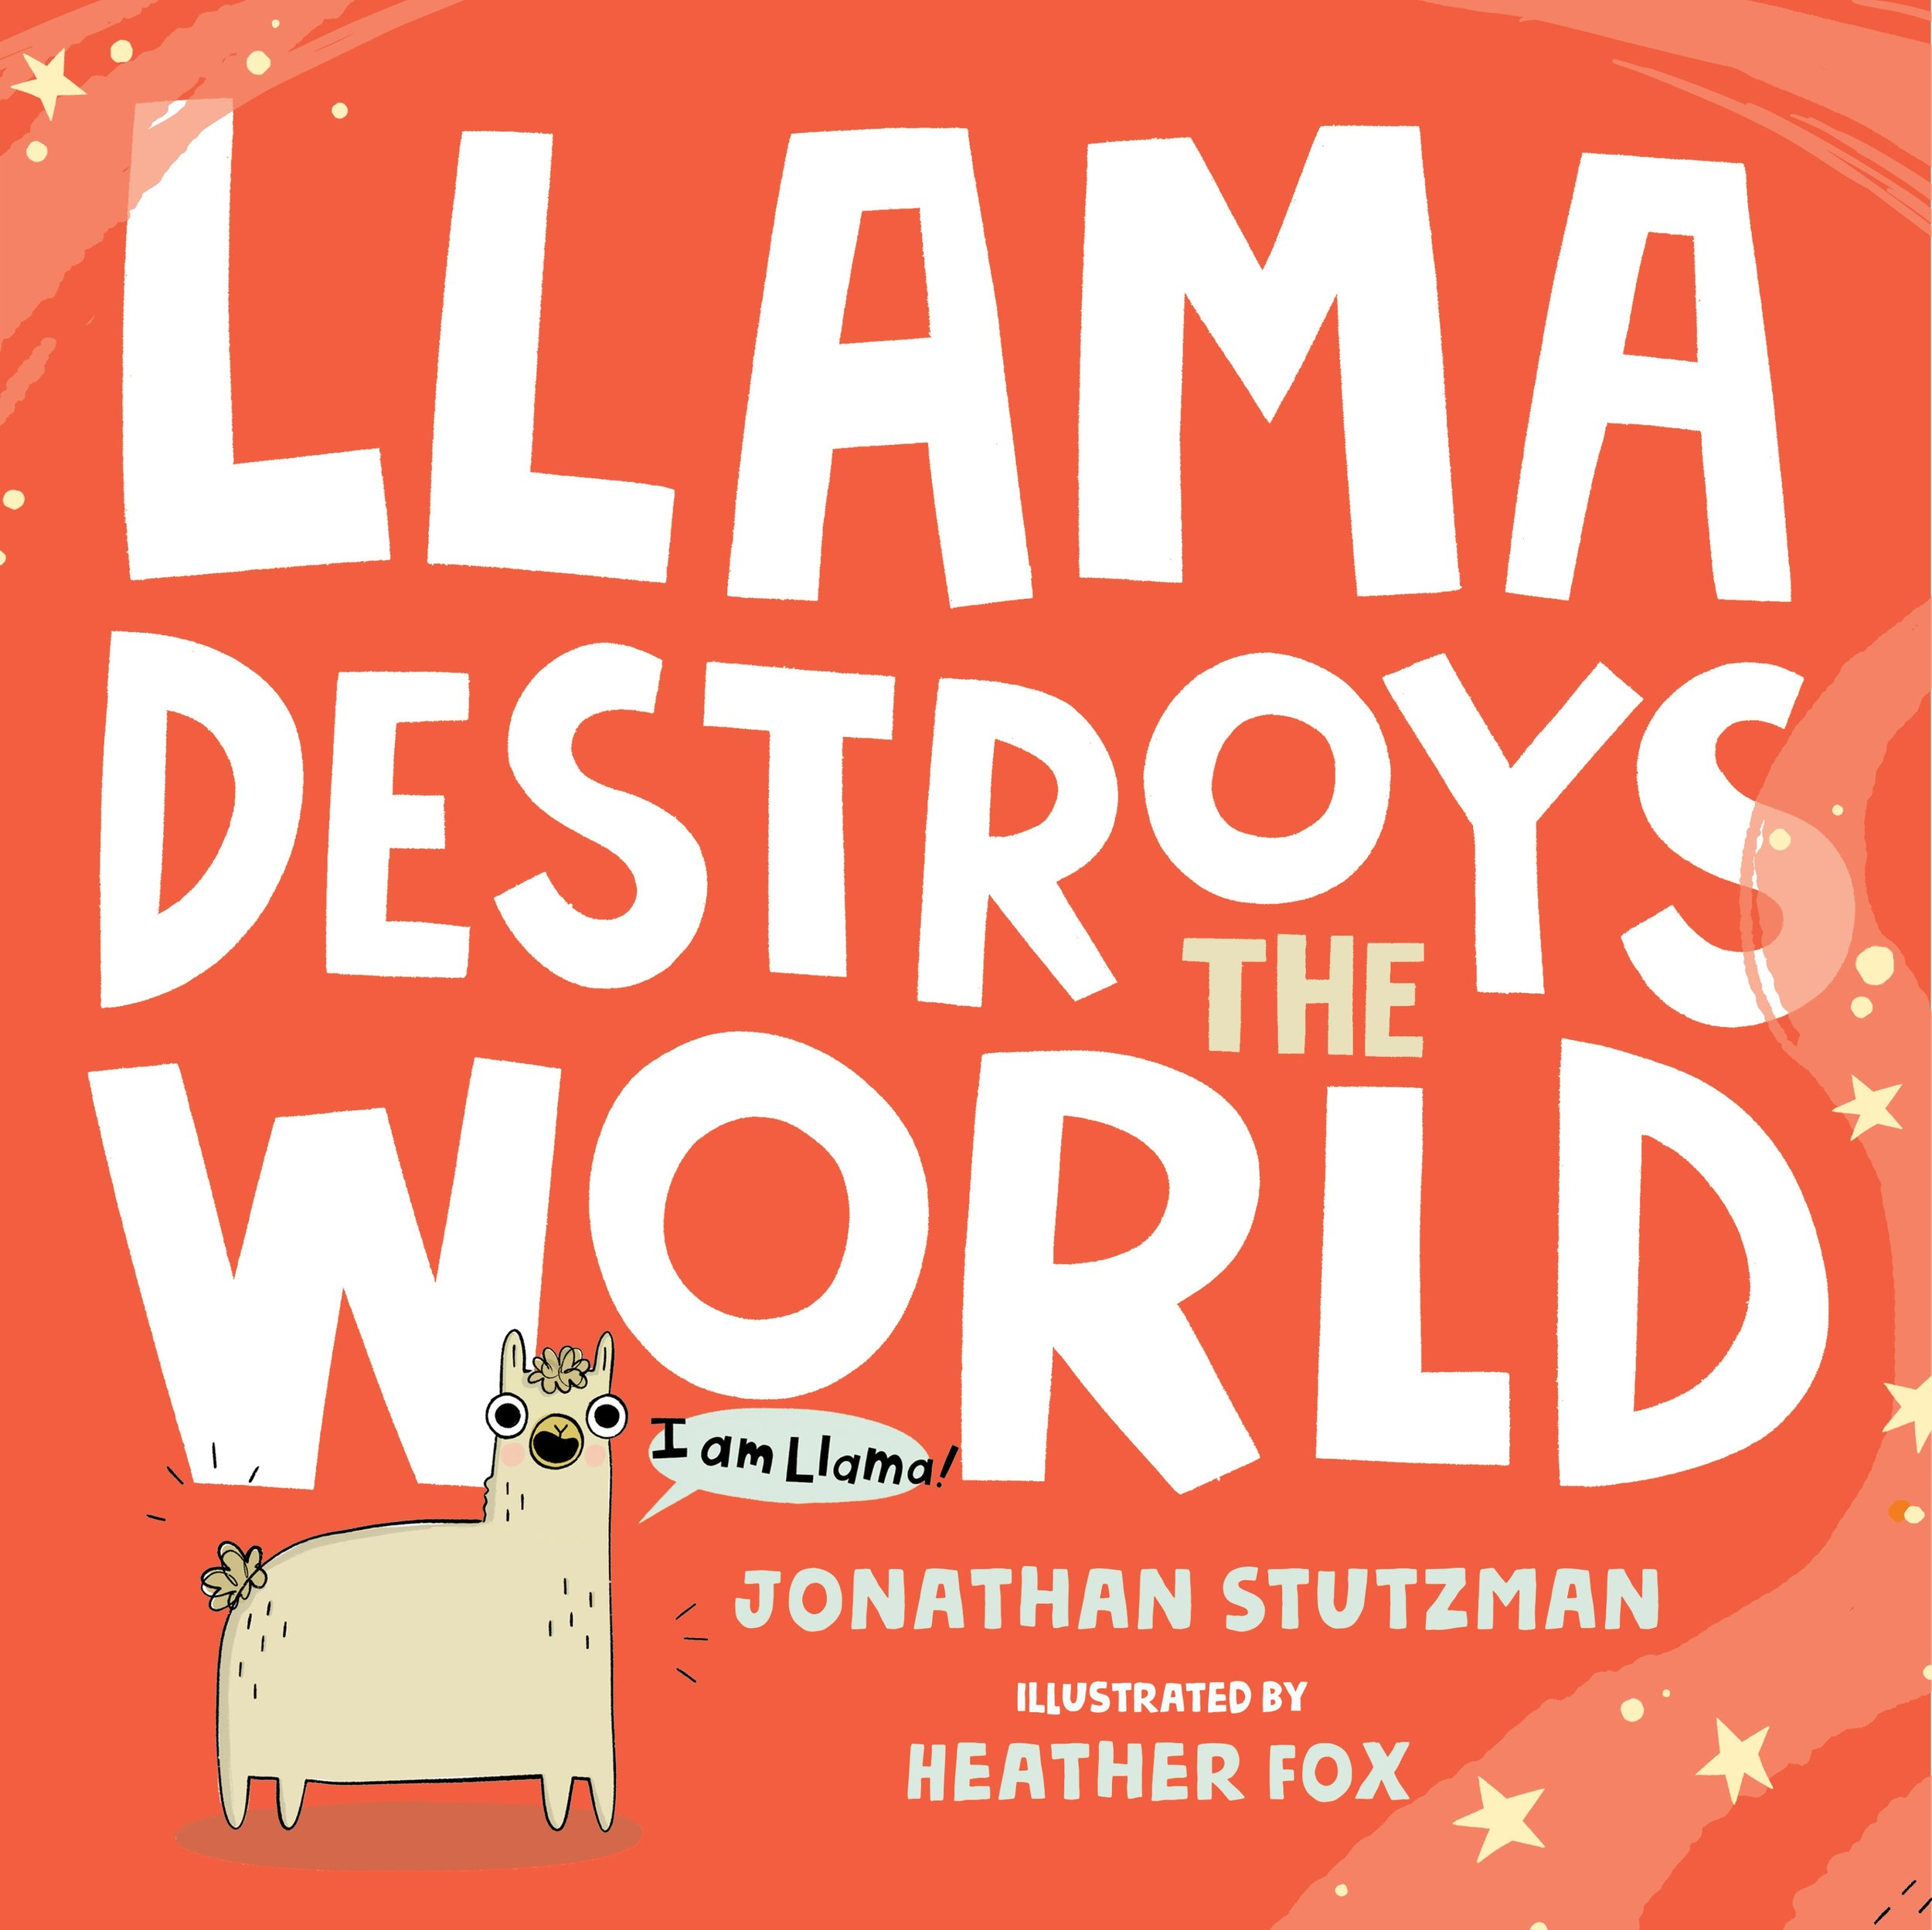 LLAMA DESTROYS THE WORLD_cover image.jpg